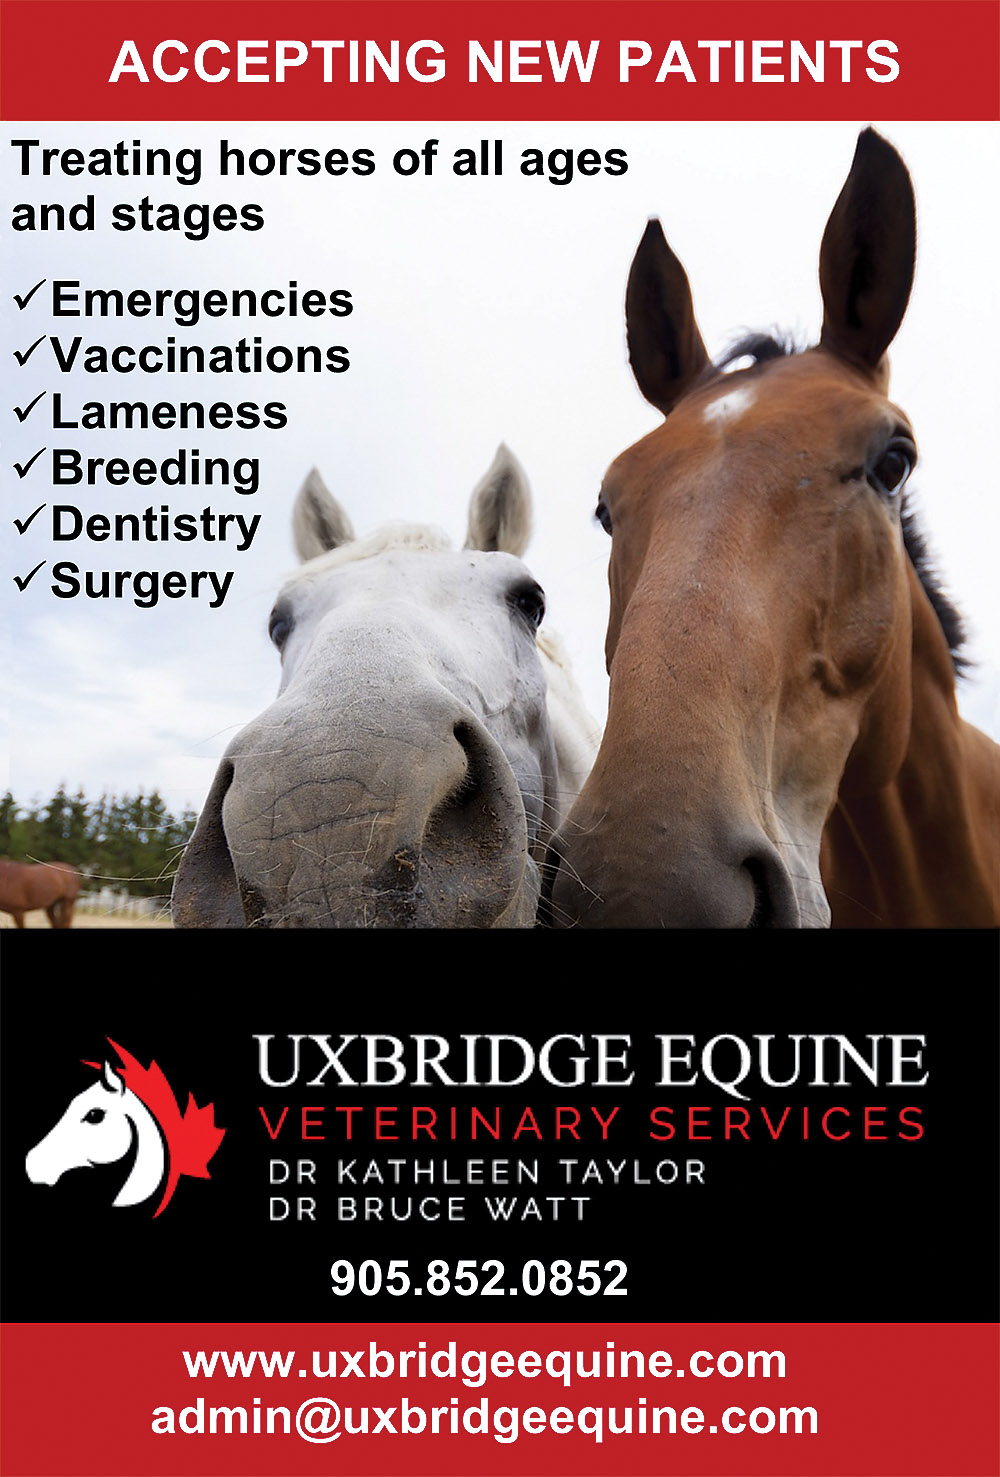 Uxbridge Equine Veterinary Services